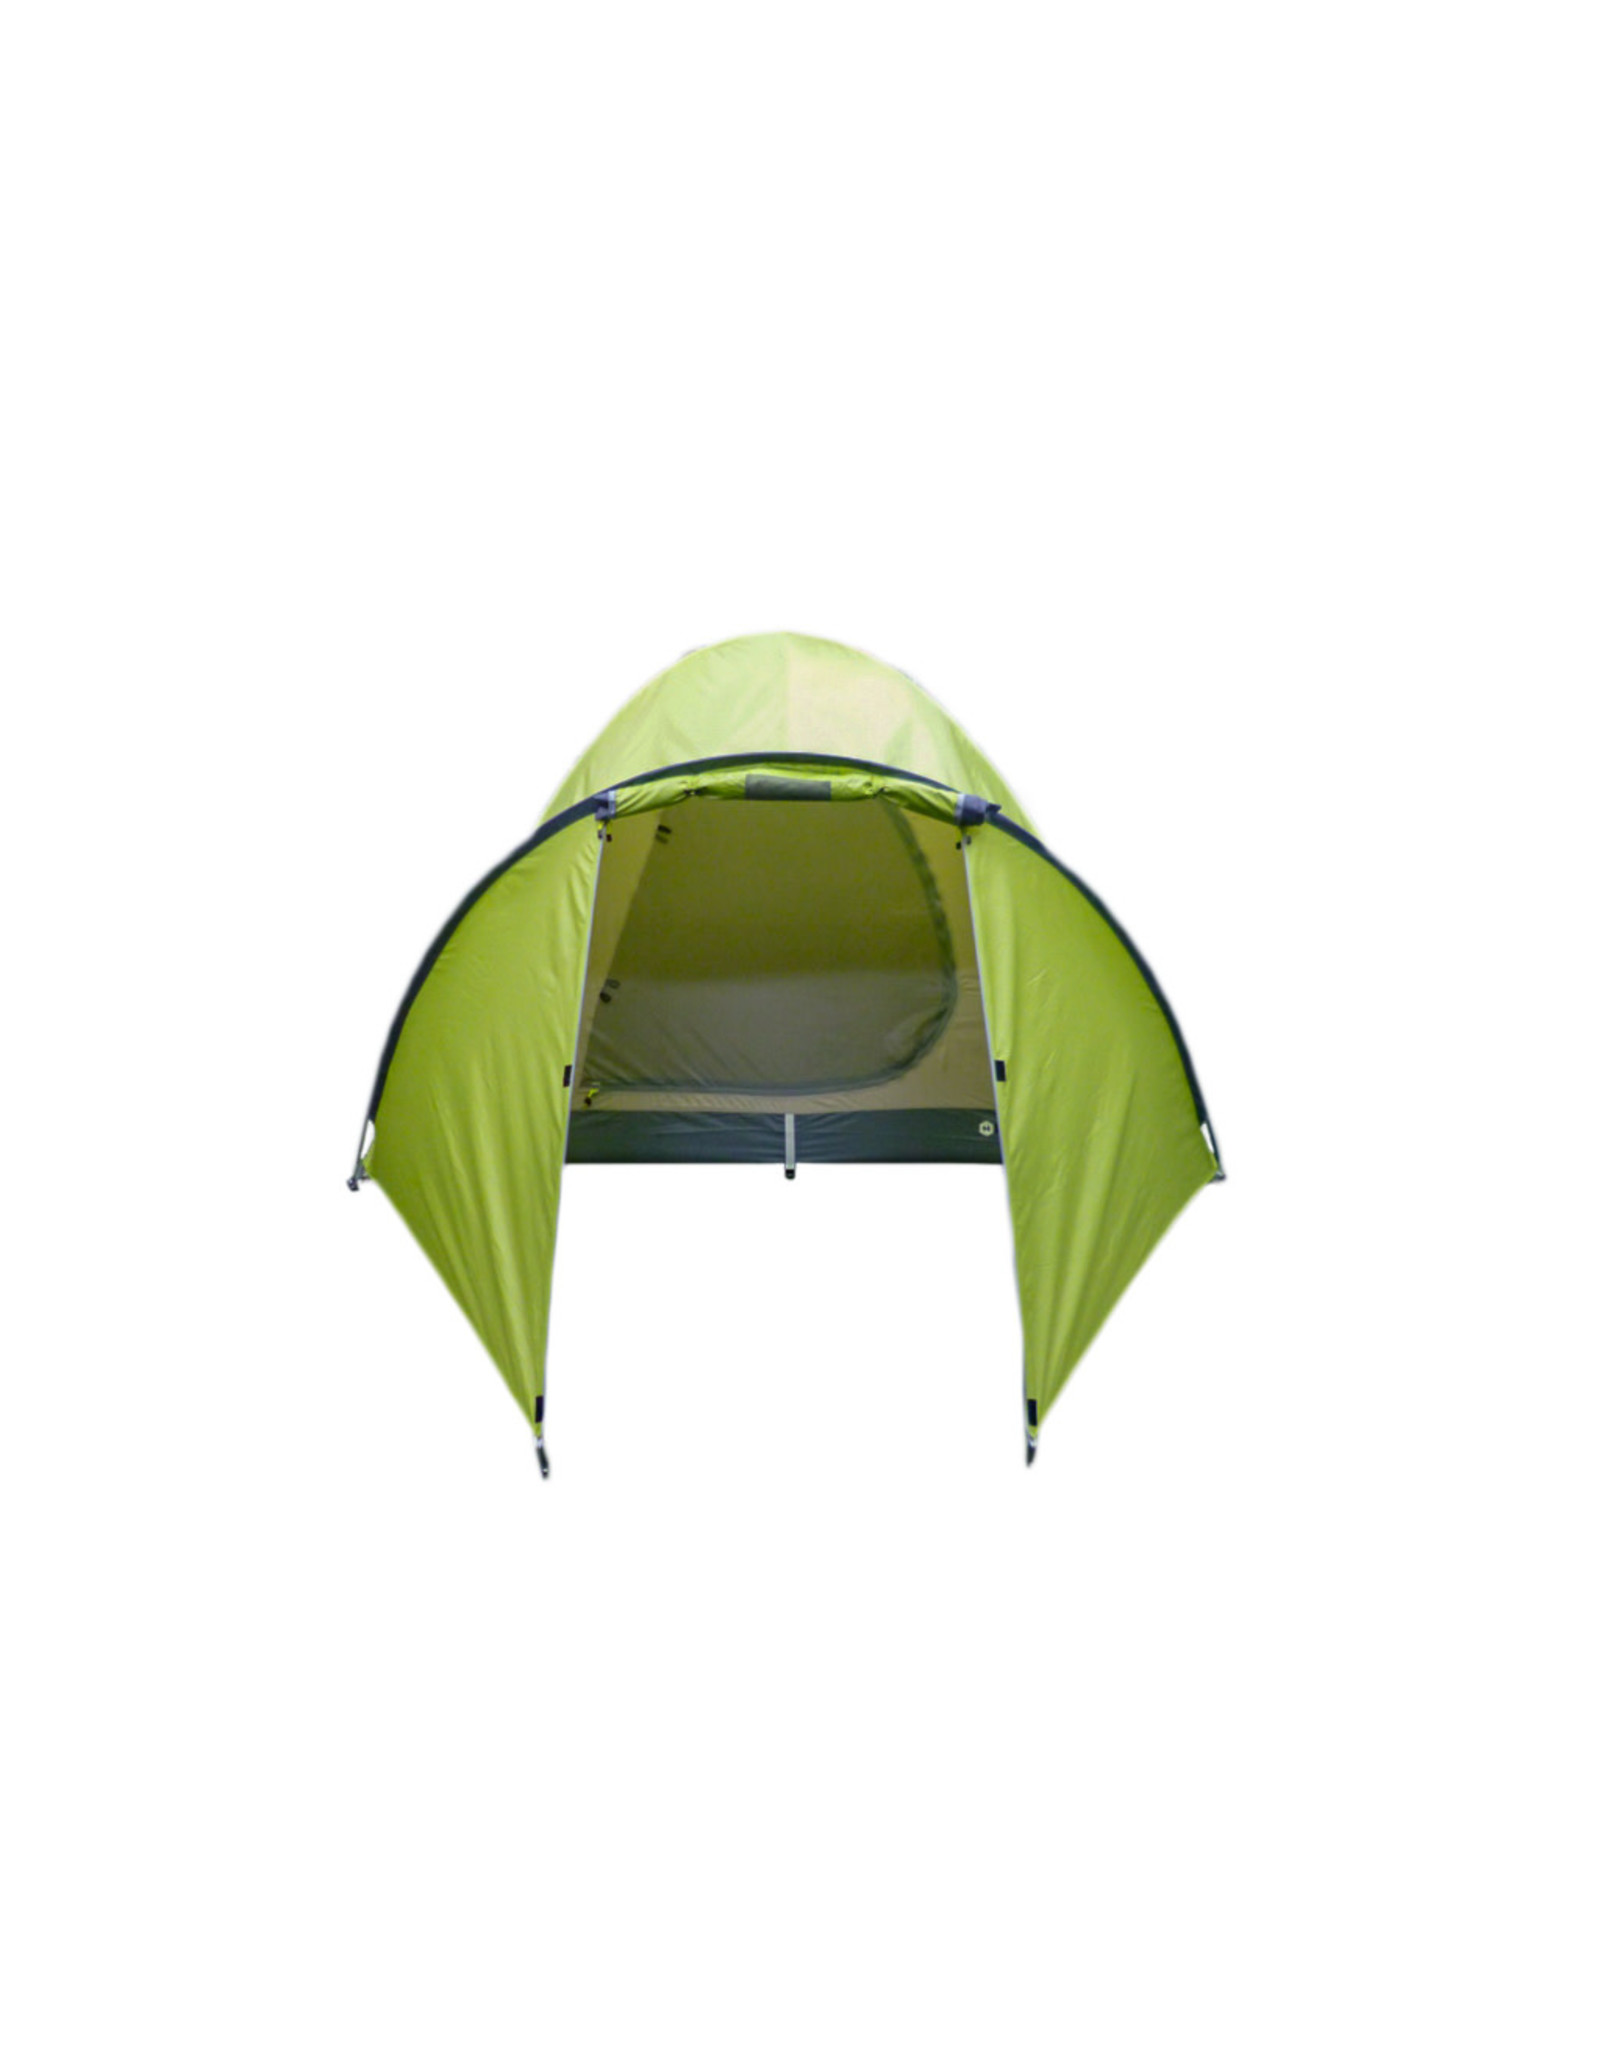 Hotcore Outdoor Products Hotcore Discovery 4 Tent